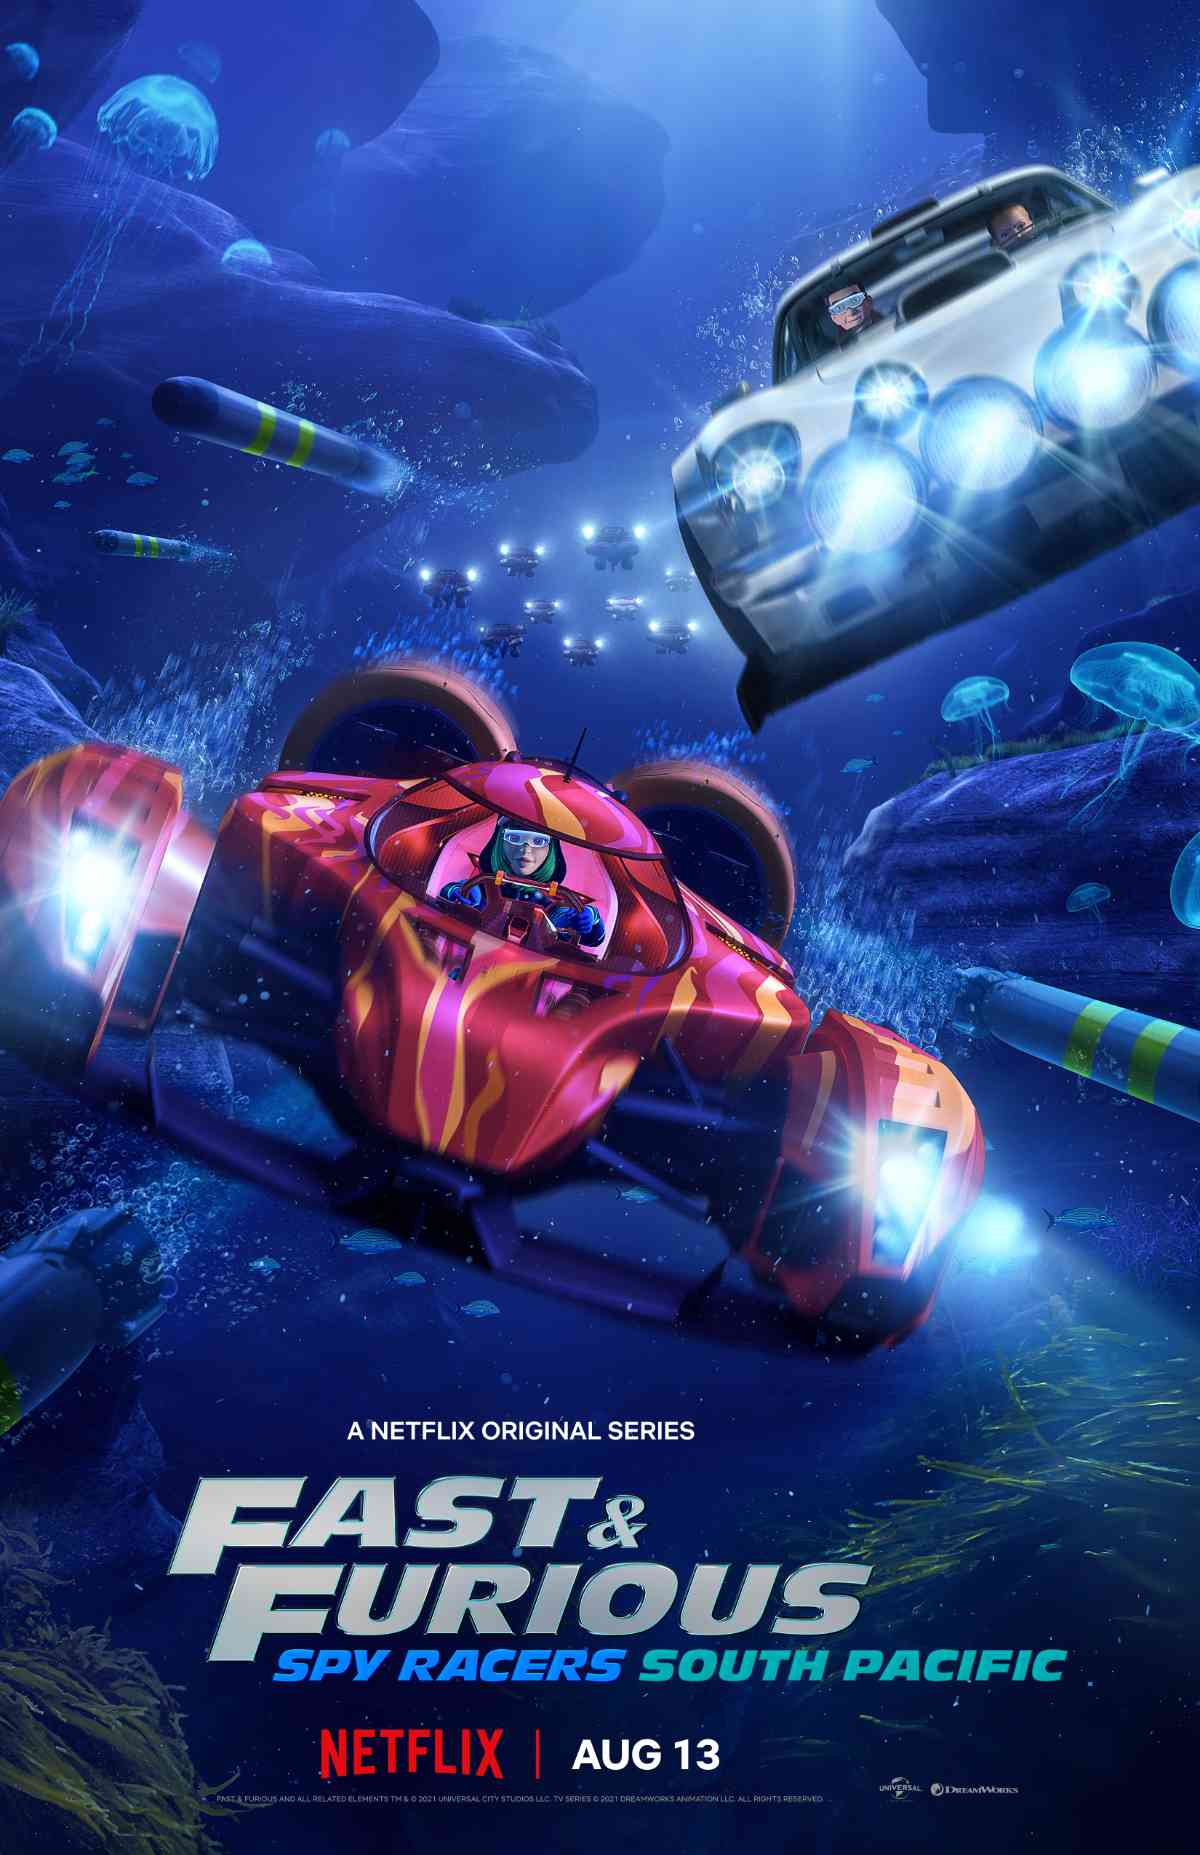 Fast & Furious: Spy Racers South Pacific